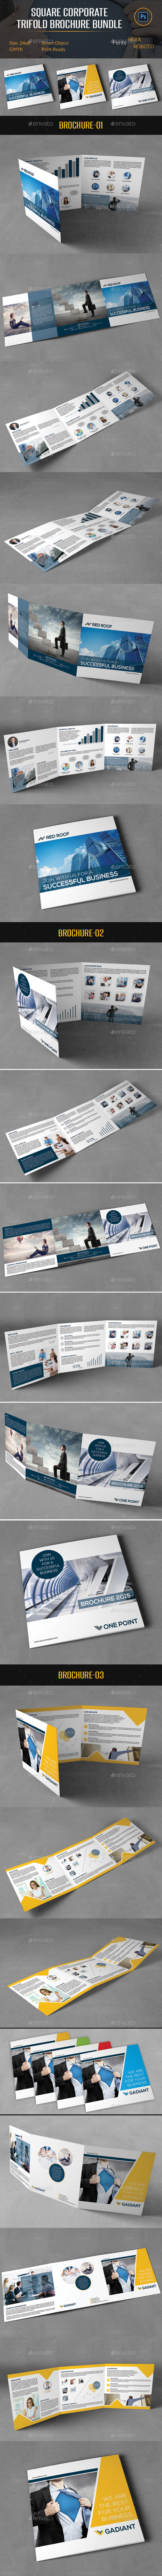 Square Corporate Trifold Brochure Bundle - Corporate Brochures